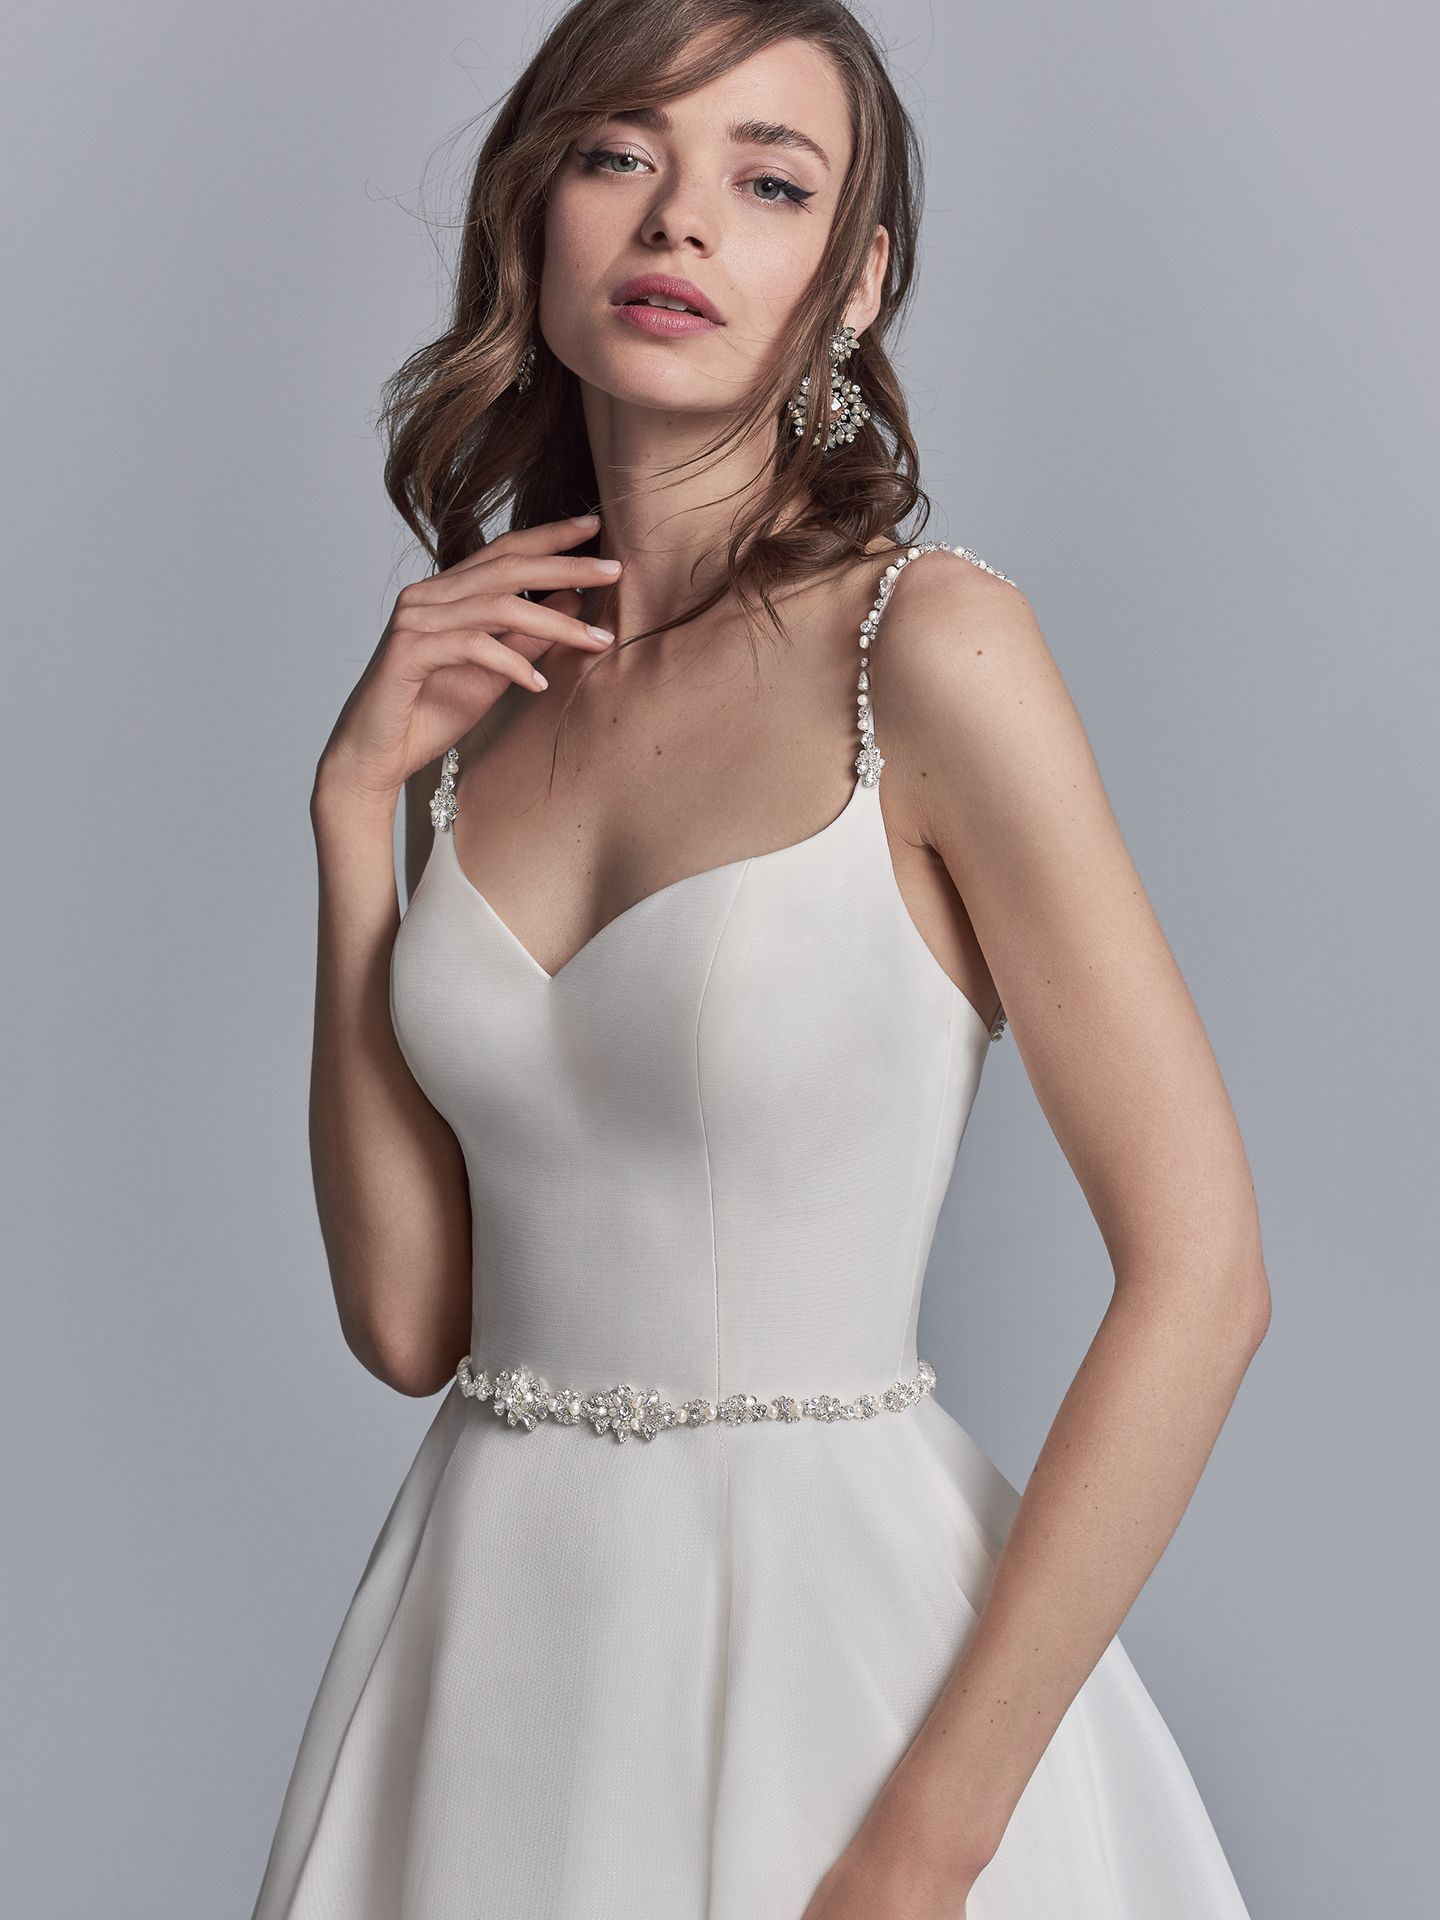 Comprised of Shavon Organza, this classic wedding dress features delicate beaded spaghetti straps and a beaded belt, both accented in Swarovski crystals. A sweetheart neckline completes this chic A-line gown. - The Latest Wedding Dress Trends for Engagement Season 2018